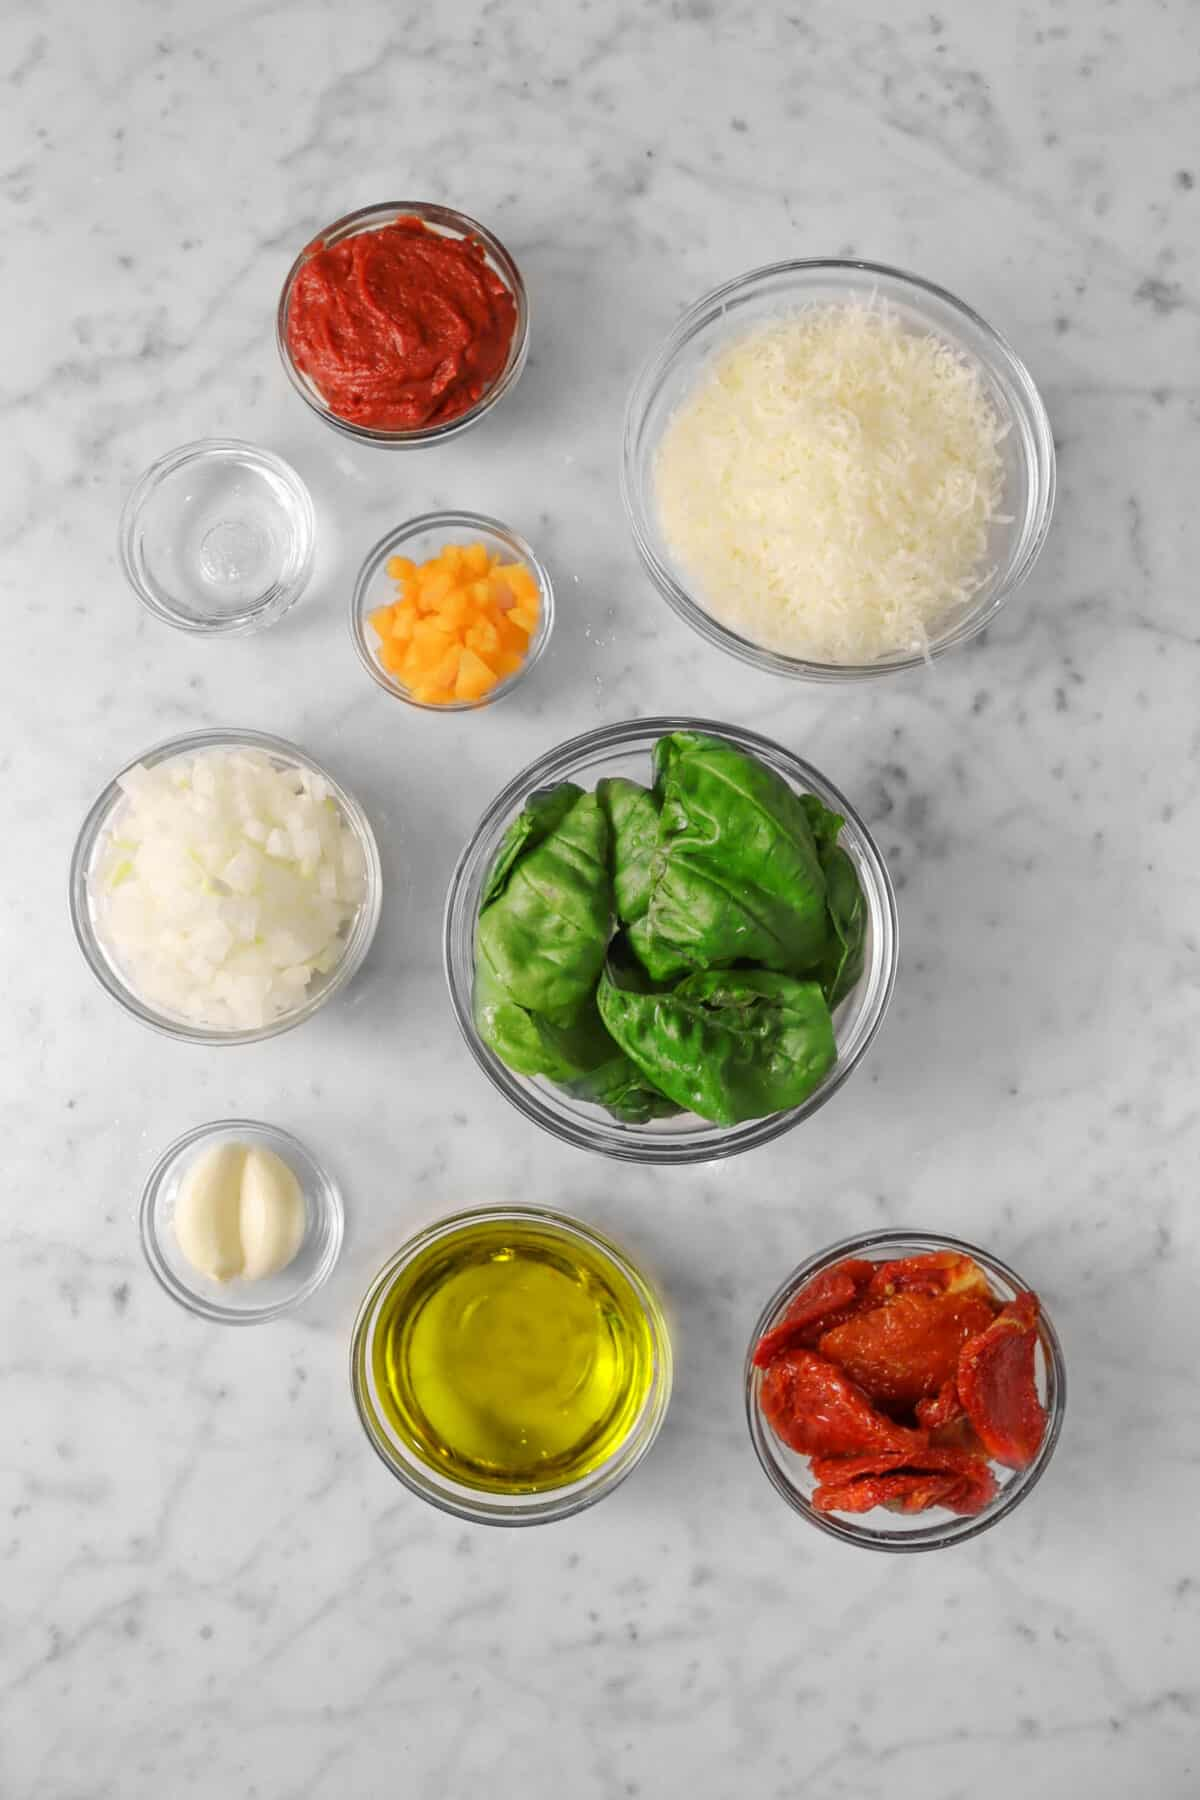 ingredients for tomato pesto on a marble counter